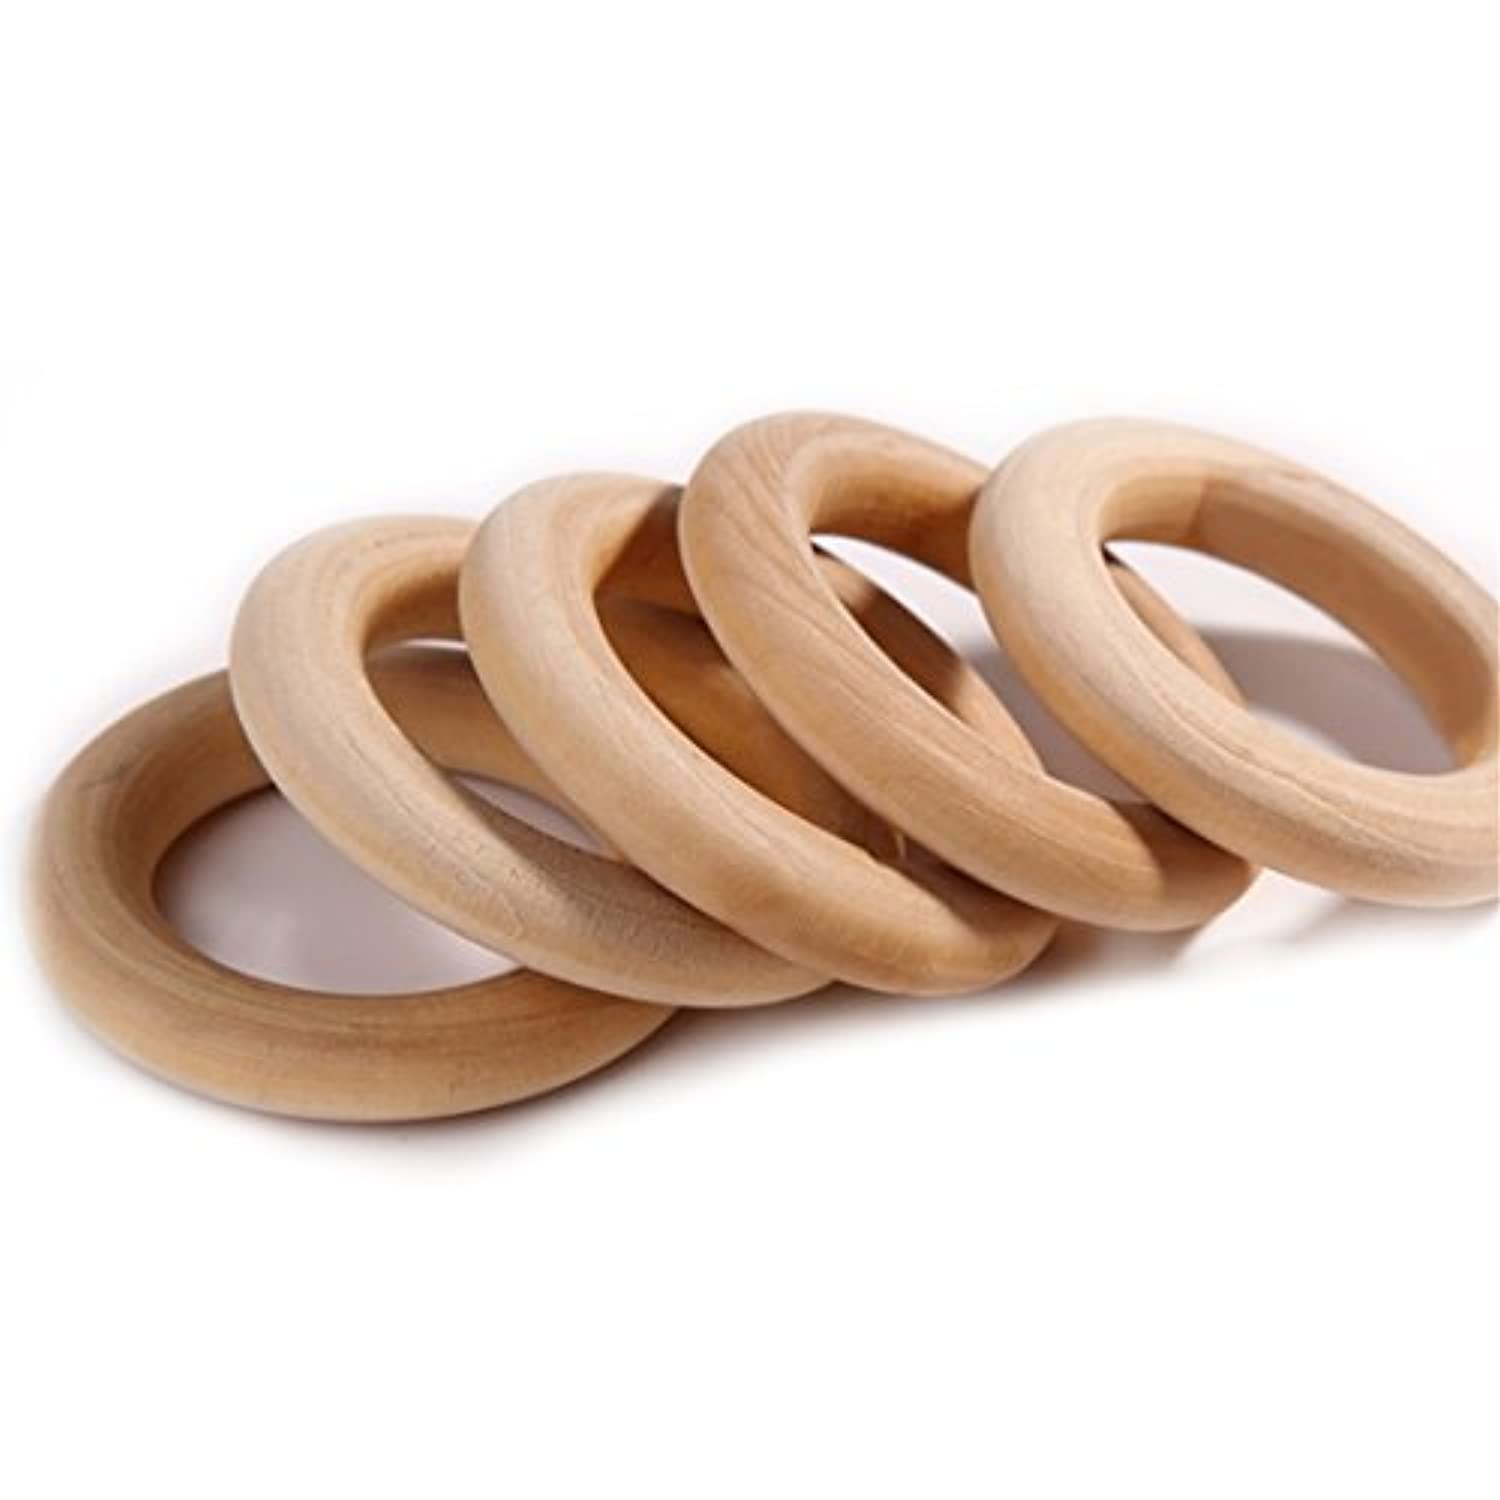 20pc 56mm 2.2 Inch Natural Unfinished Wooden Teething Rings Baby Teether Mom Nursing Jewelry Diy Wood Ring by LOVEBABY